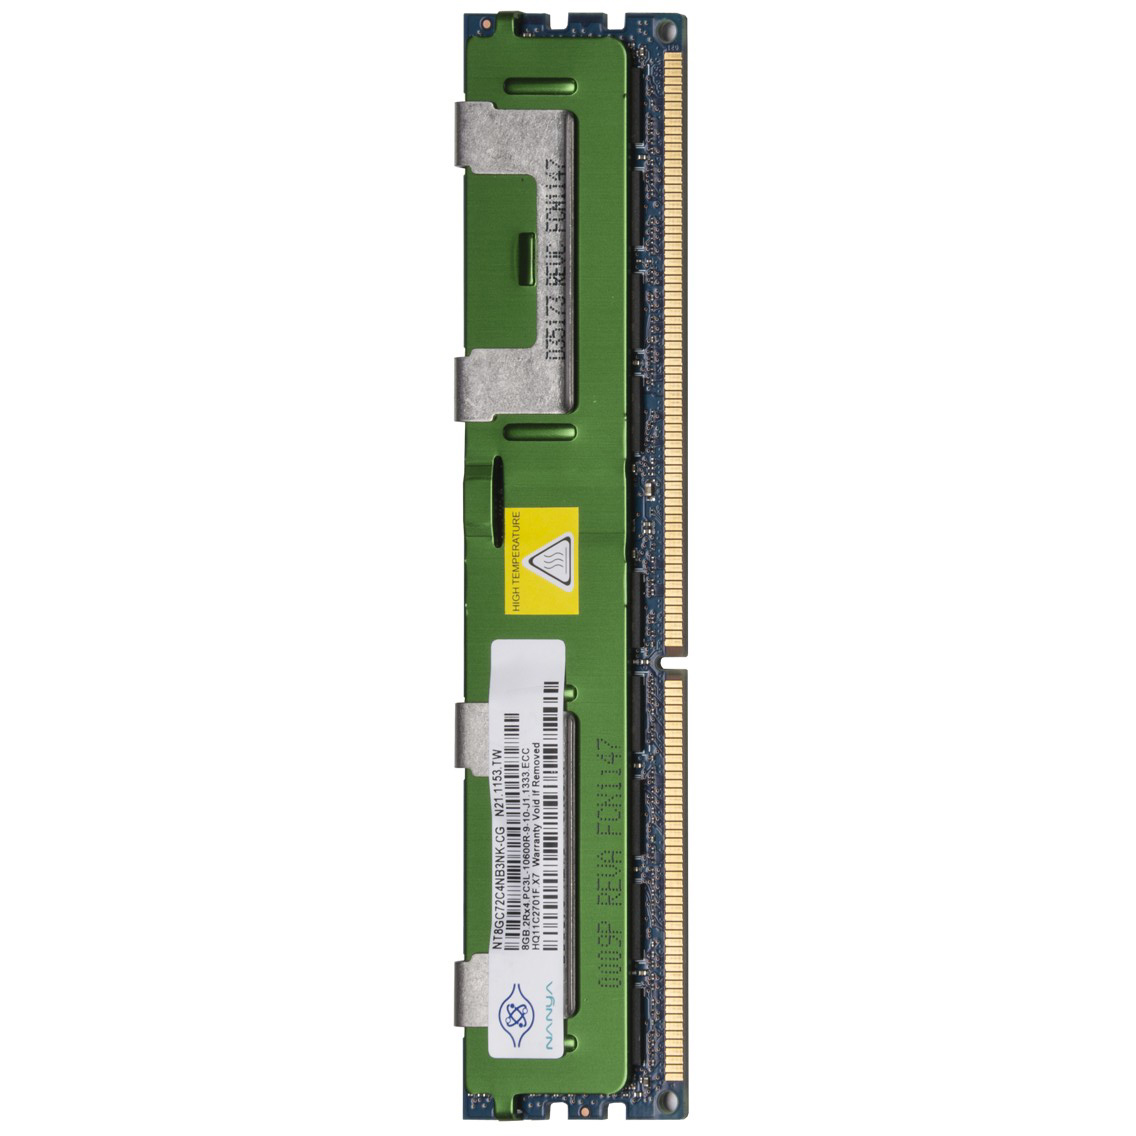 Nanya 8GB DDR3 RAM 1333MHz PC3-10600 ECC Registered 240-Pin DIMM w/Heat Spreader